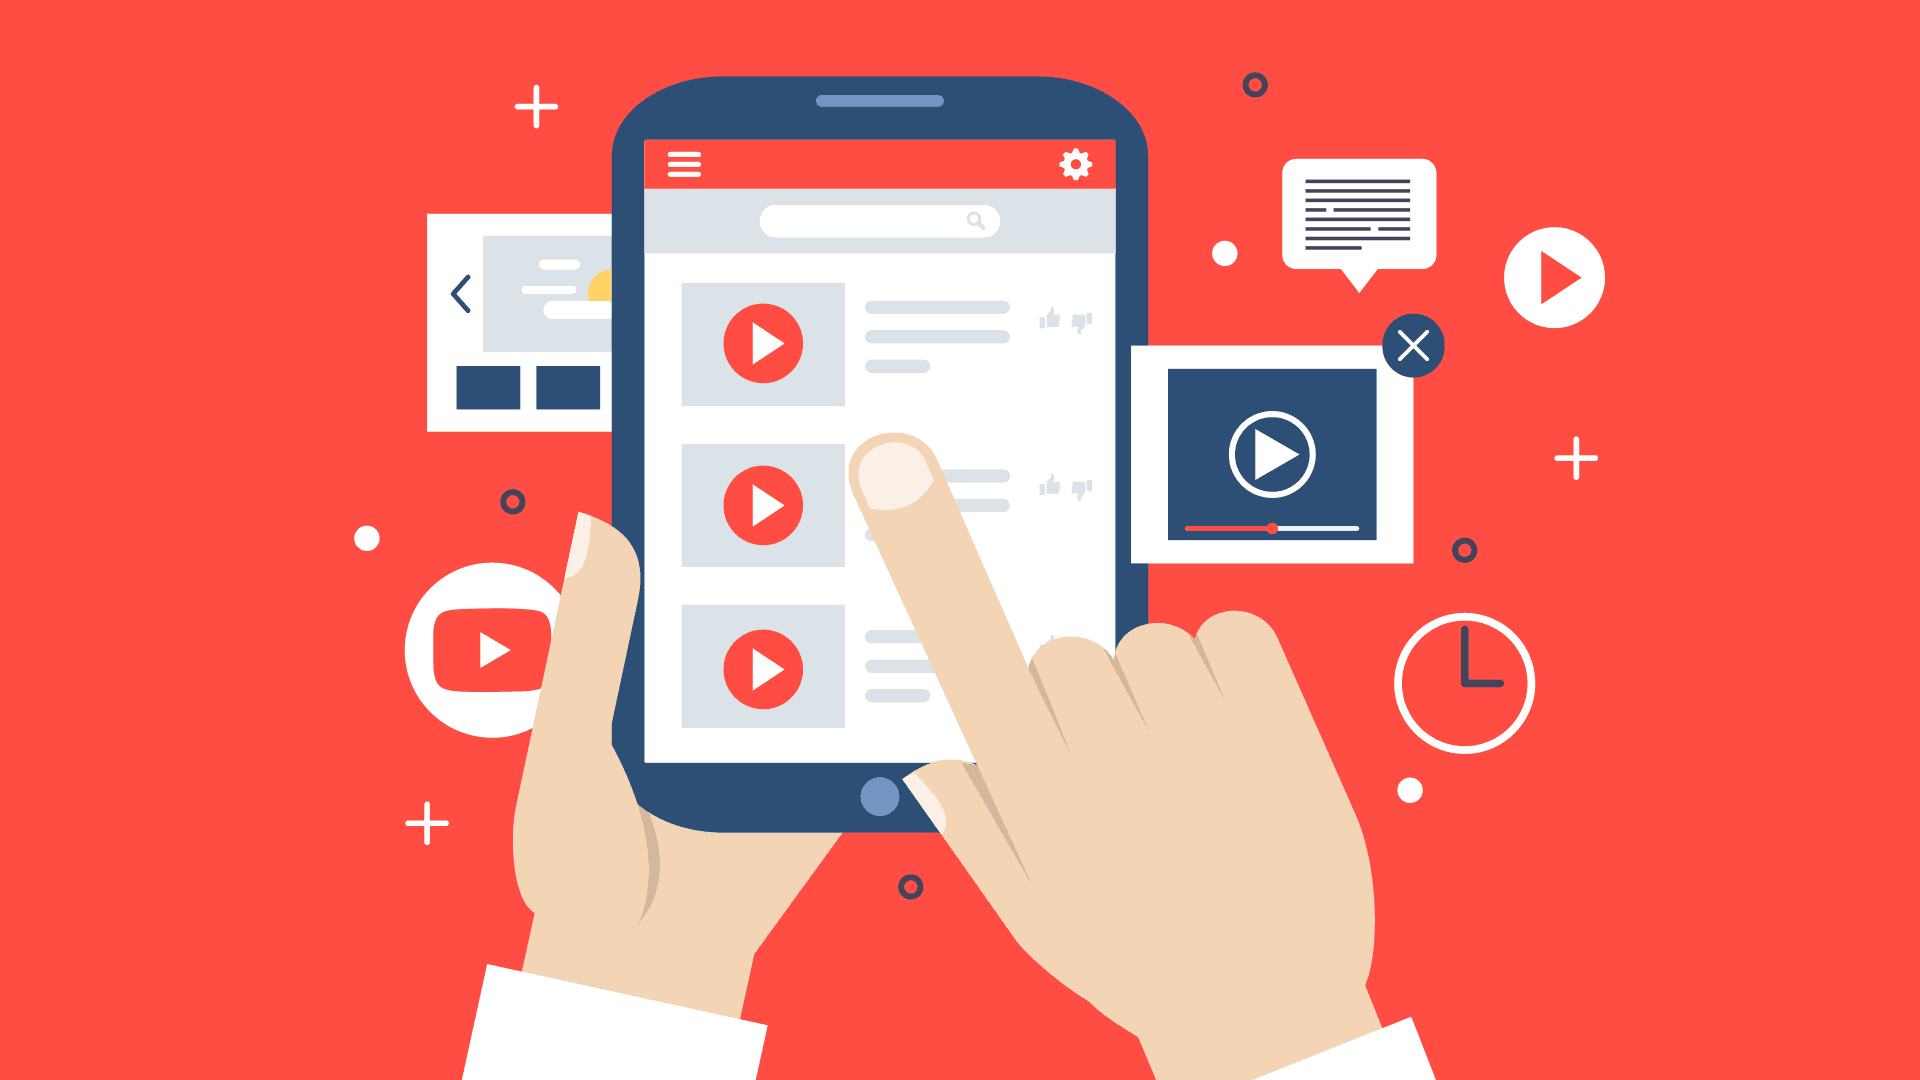 All about the YouTube channel | Darvideo Blog